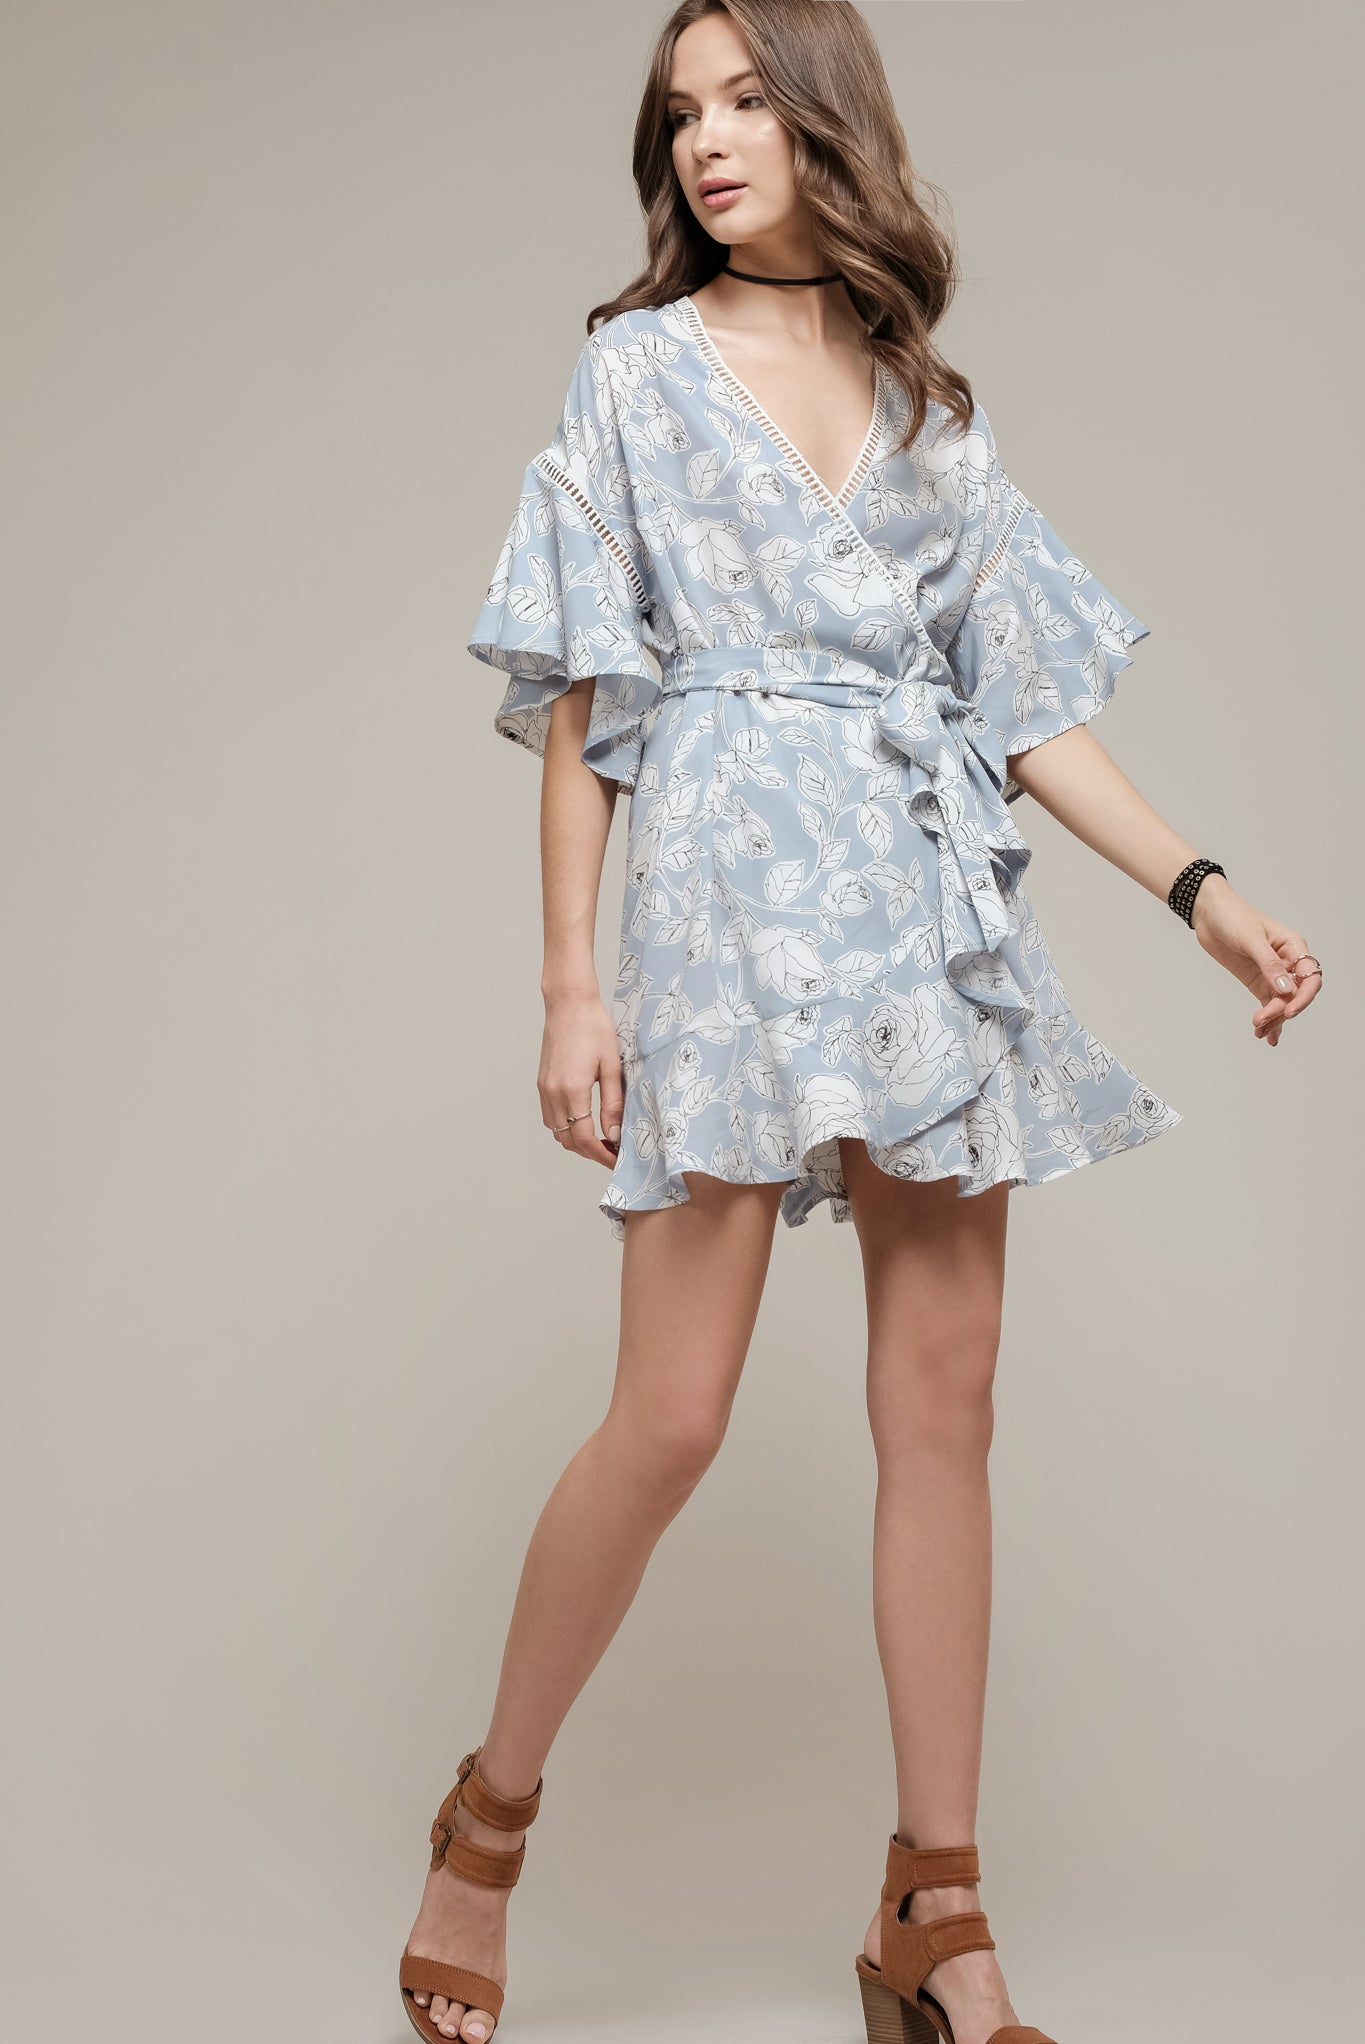 32c0ce13504265 FLORAL PRINTED WRAP DRESS WITH FRILL HEM – Moon River